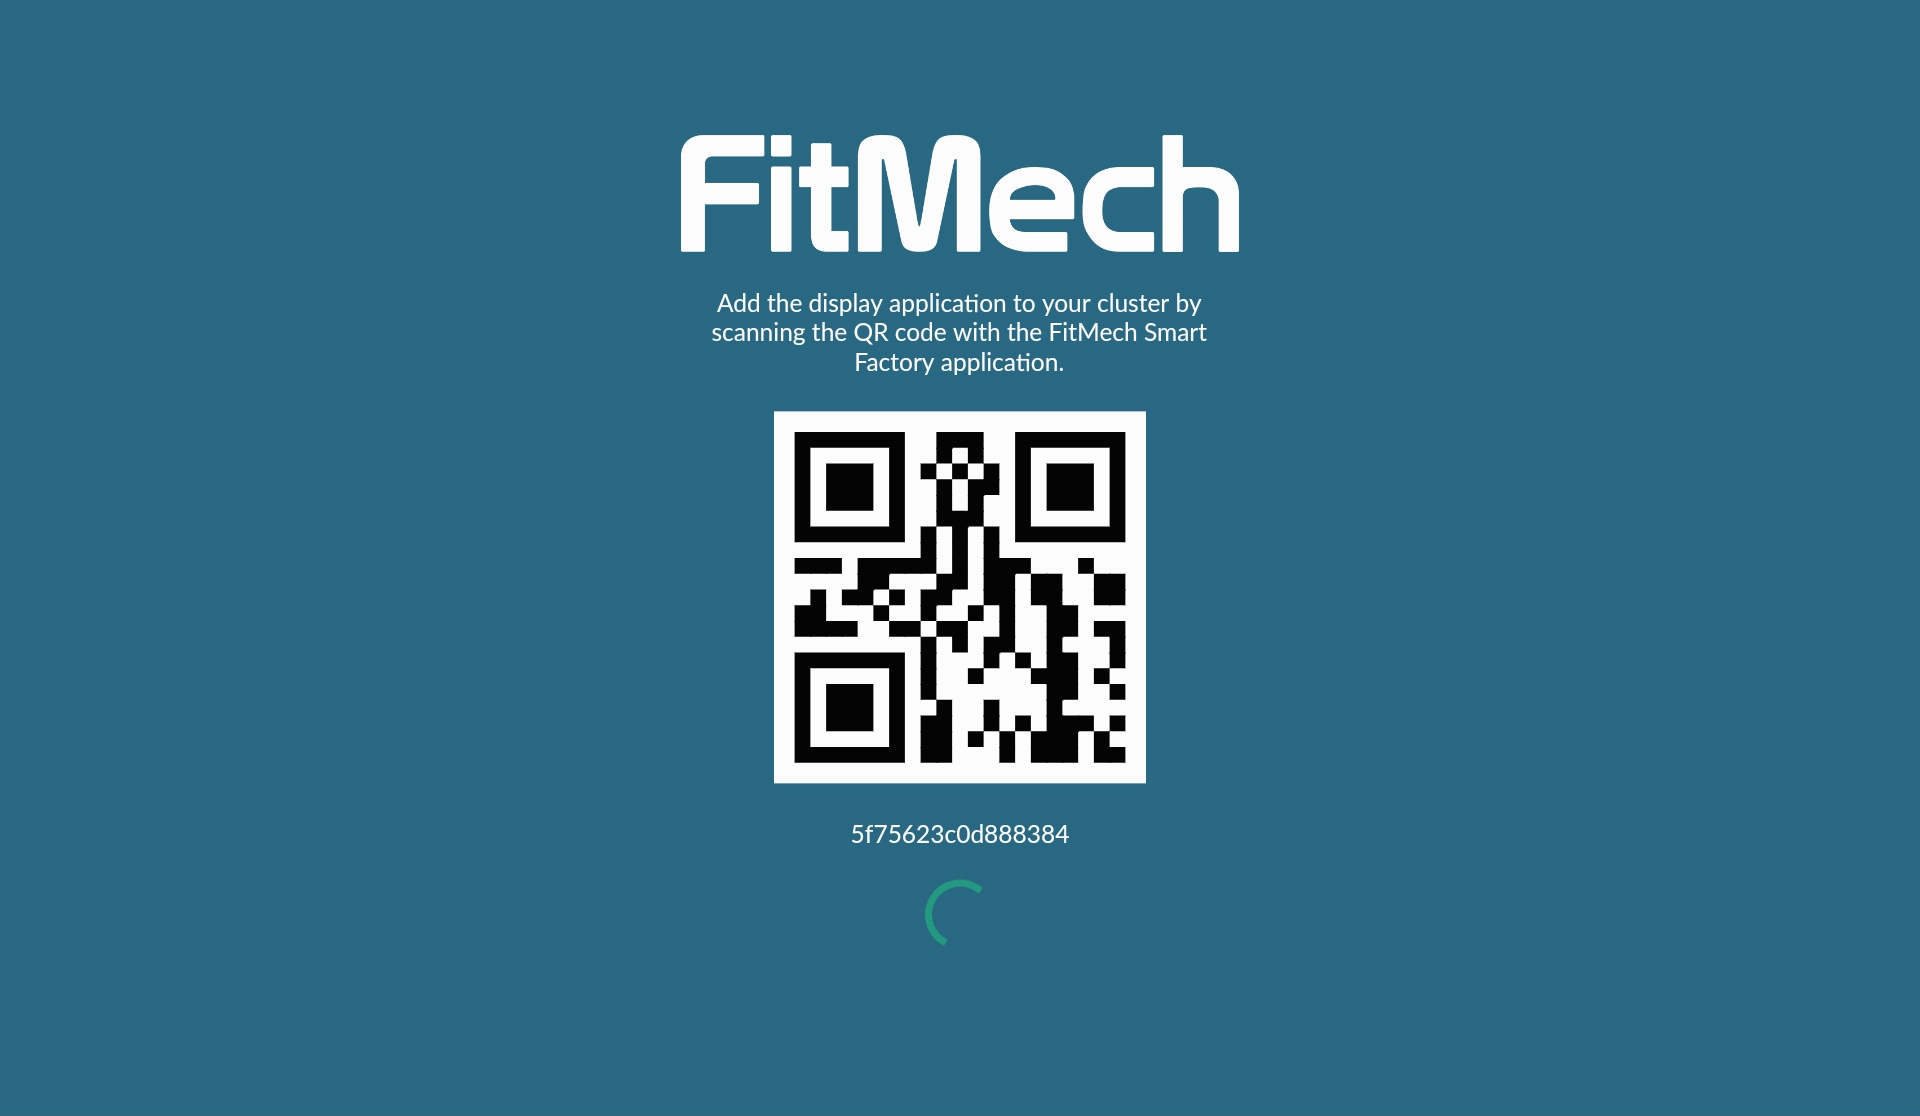 FitMech Display mobile application